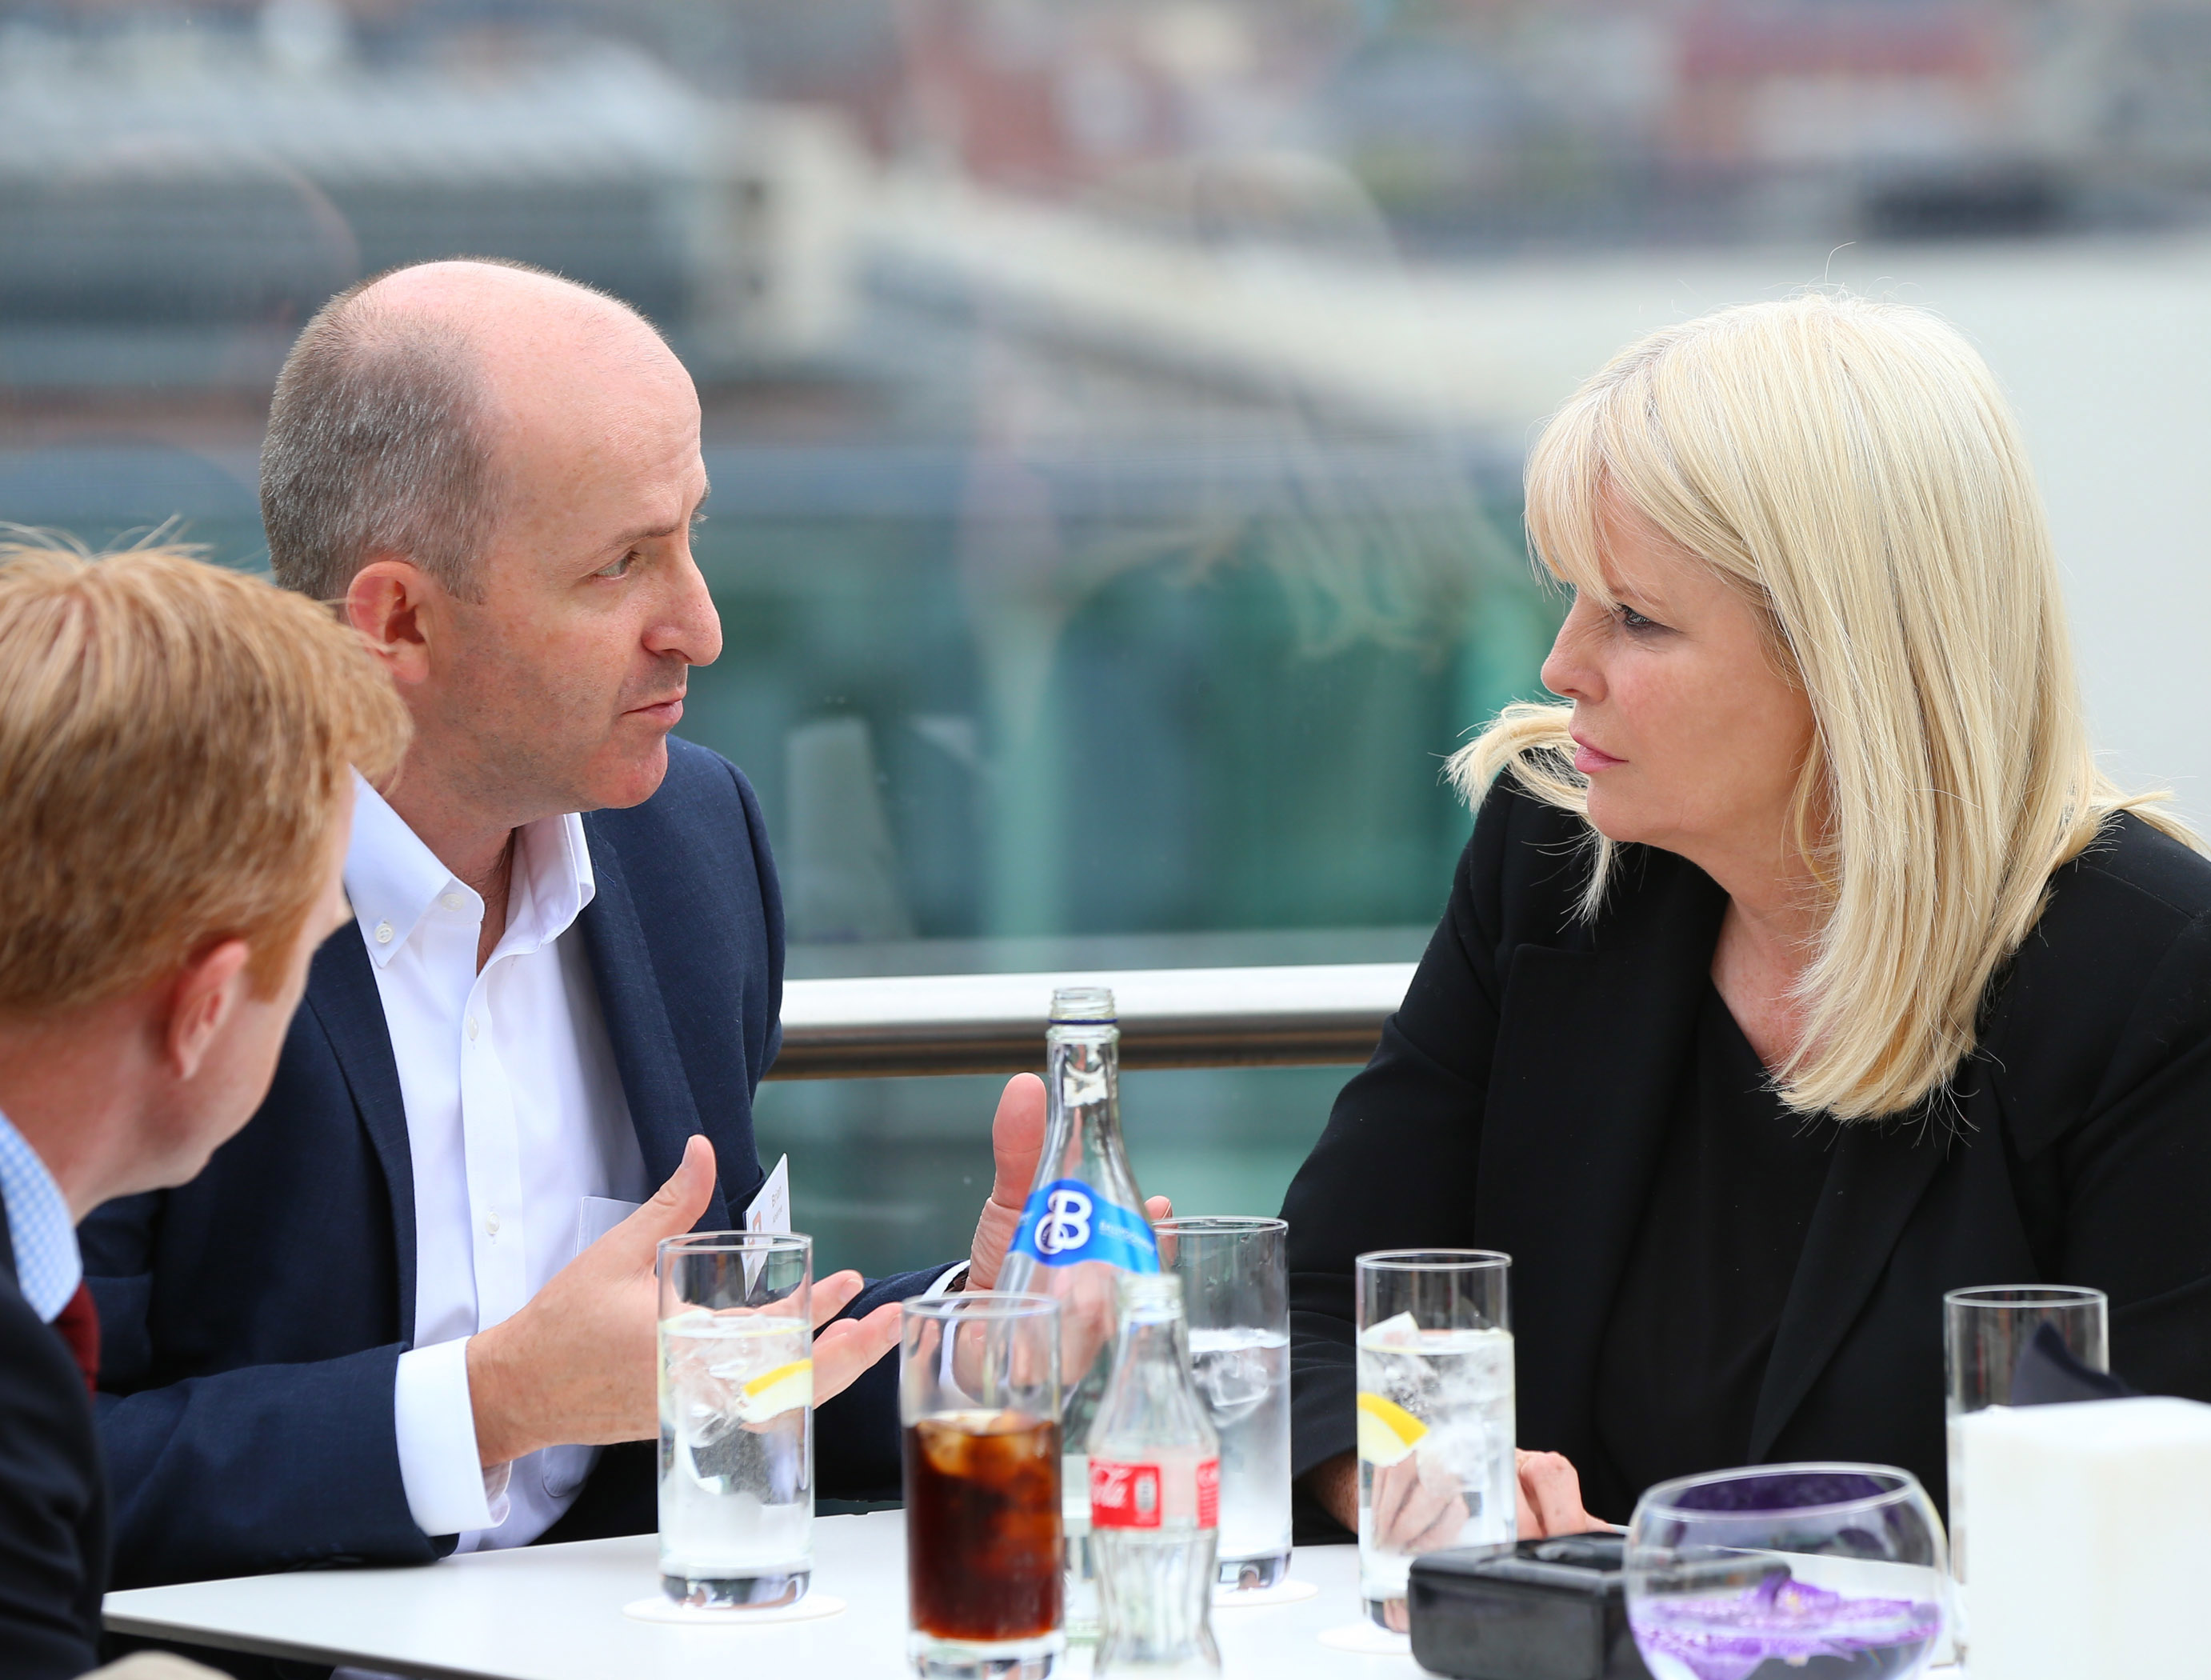 Minister for Jobs, Enterprise and Innovation Mary Mitchell O'Connor, TD. is pictured with General Manager of Intel Shannon Brian Aherne on the eve of the first ever Ireland OpenStack Day